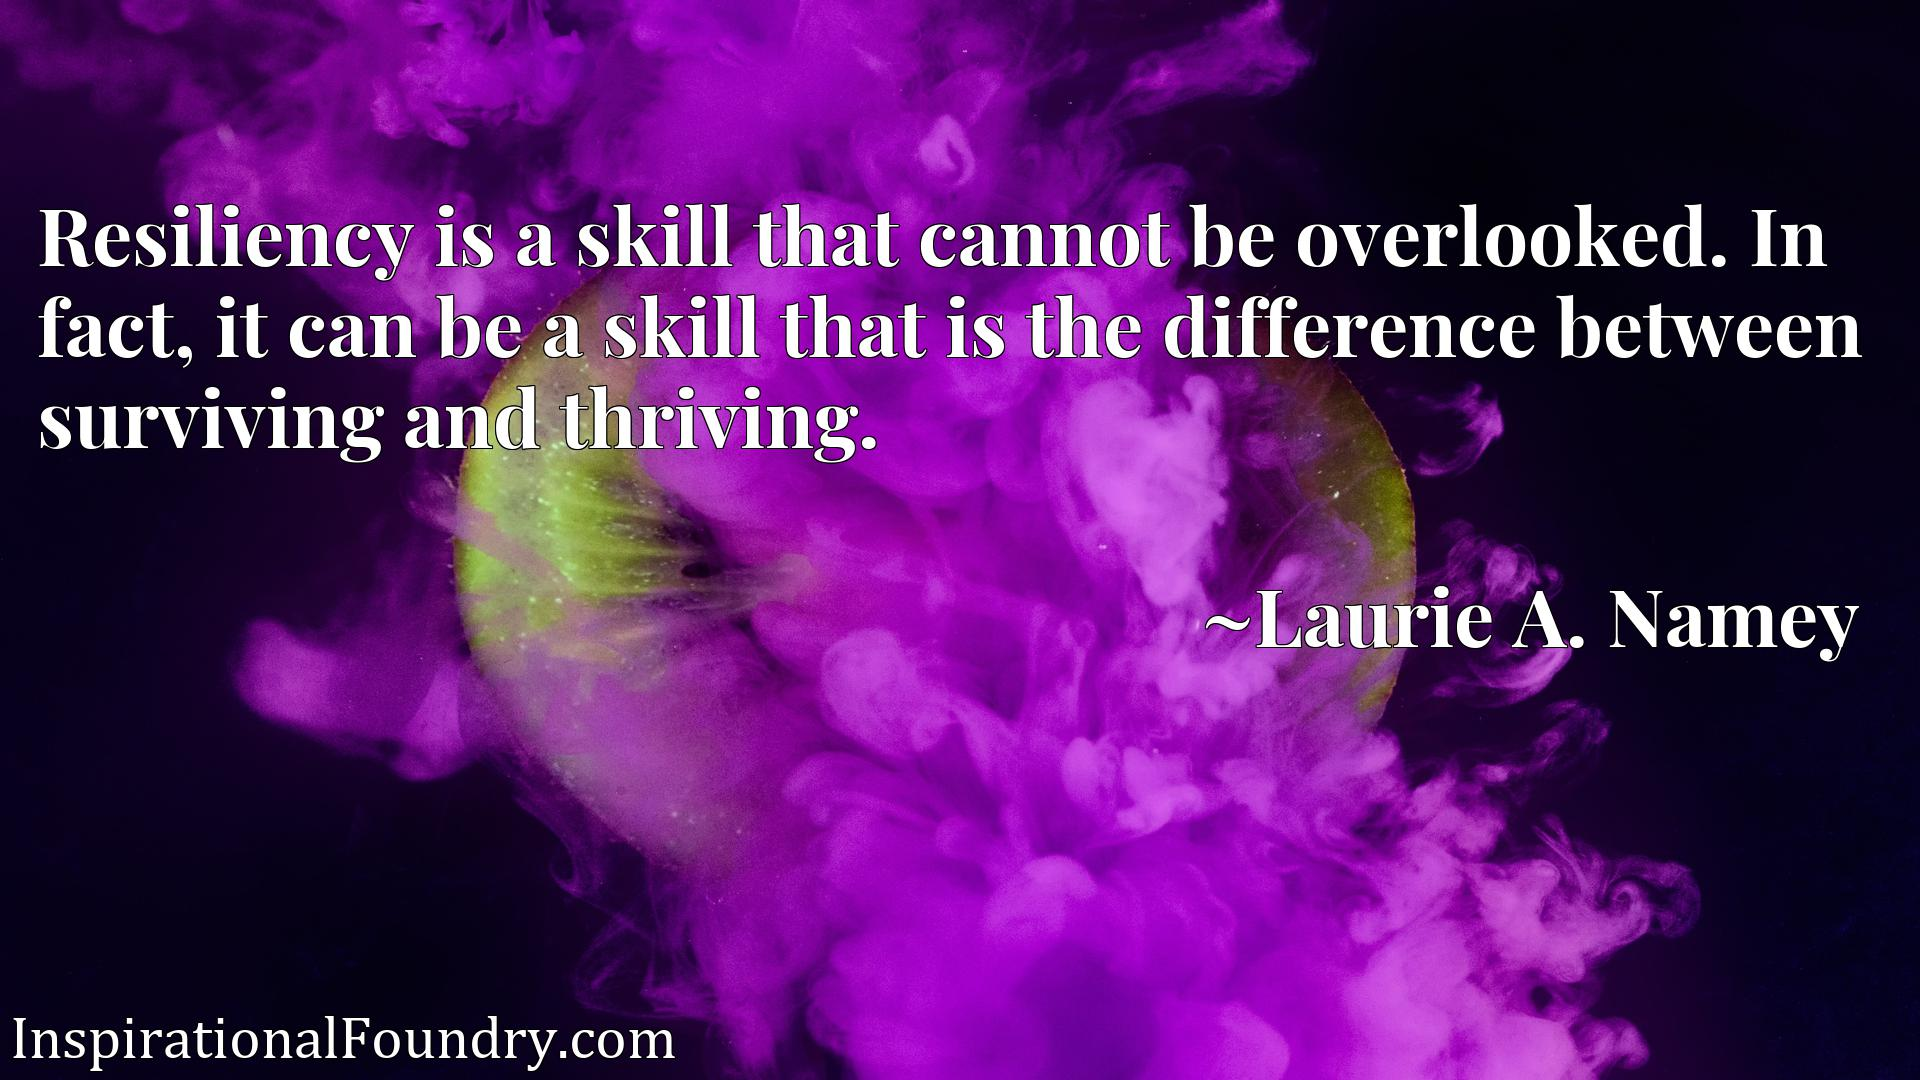 Quote Picture :Resiliency is a skill that cannot be overlooked. In fact, it can be a skill that is the difference between surviving and thriving.